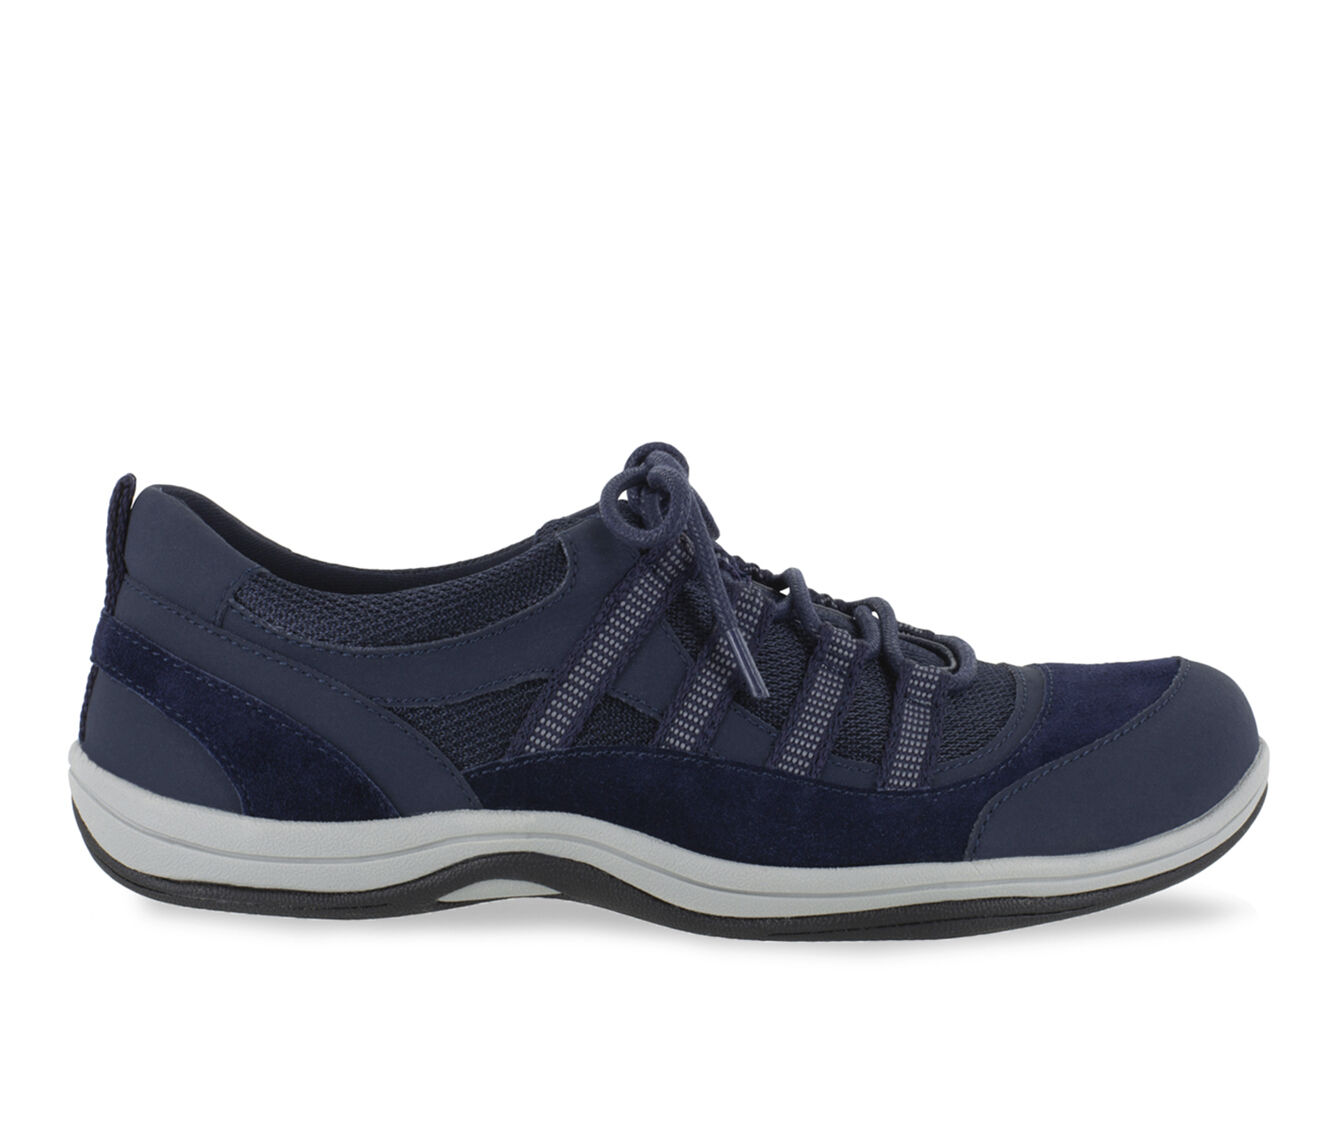 Women's Easy Street Merrimack Navy Leather